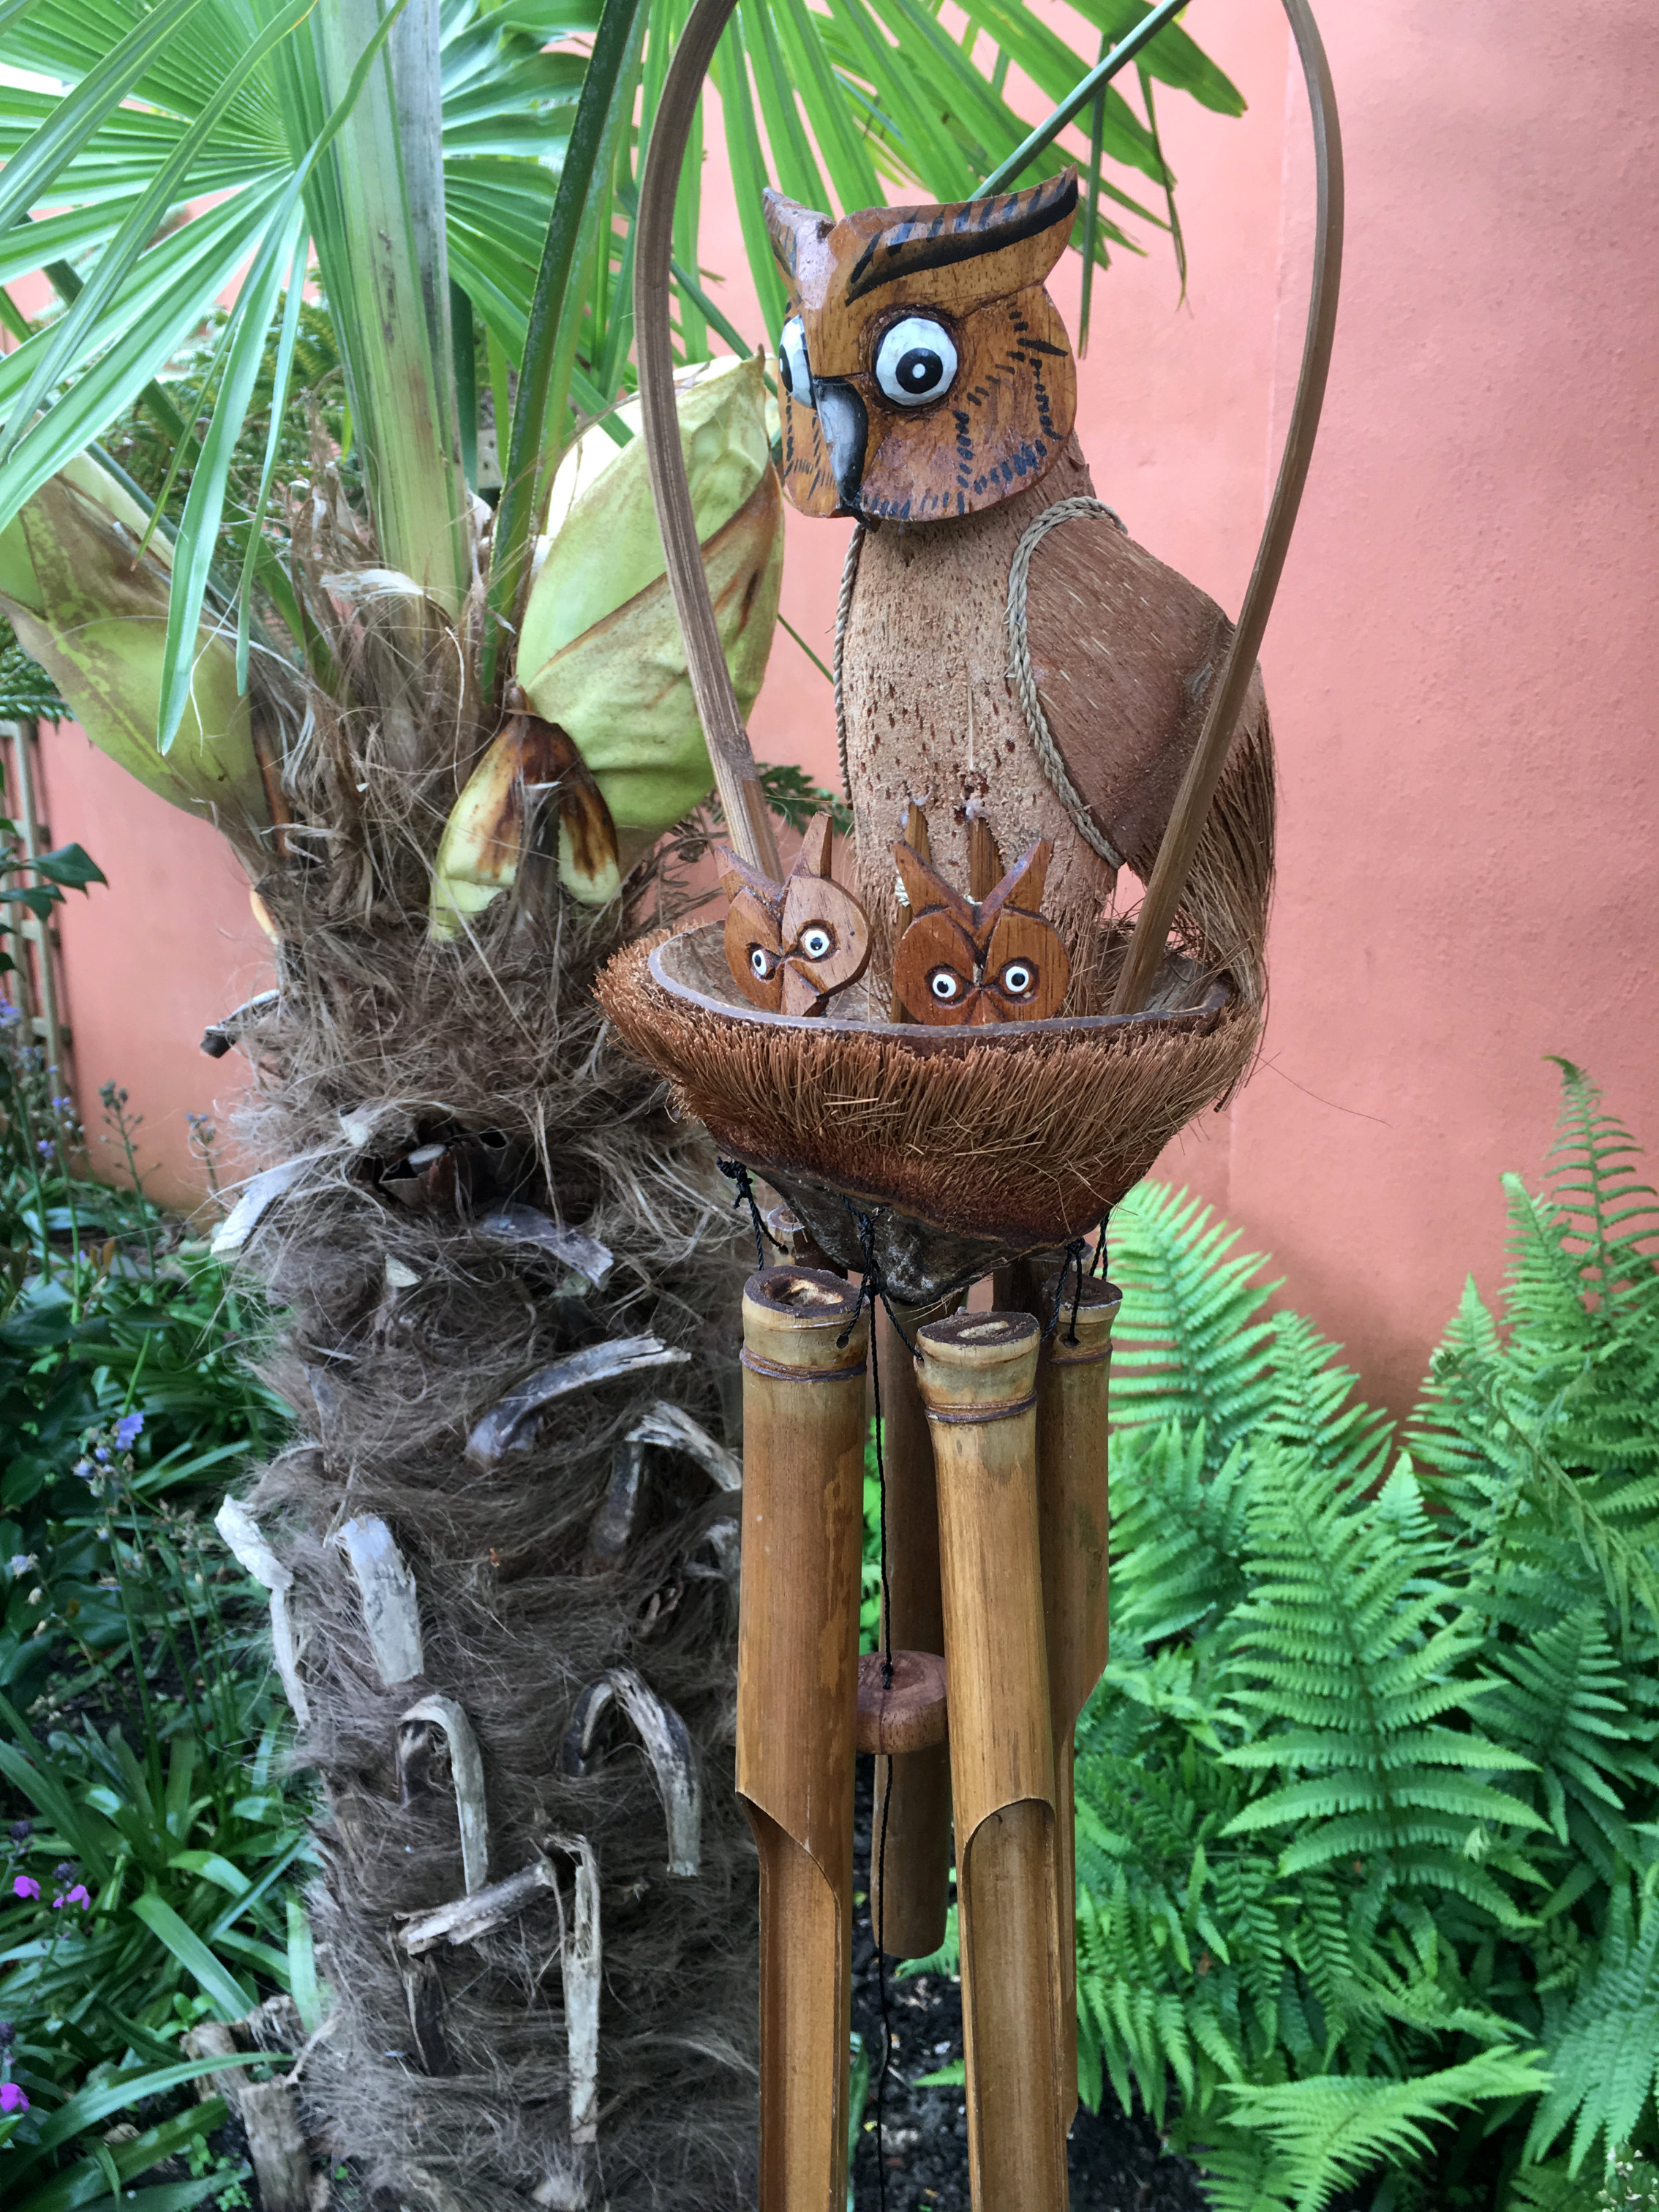 Large-Handmade-Fair-Trade-Coconut-And-Bamboo-Wind-Chime-Mobiles-6-Designs miniatuur 23